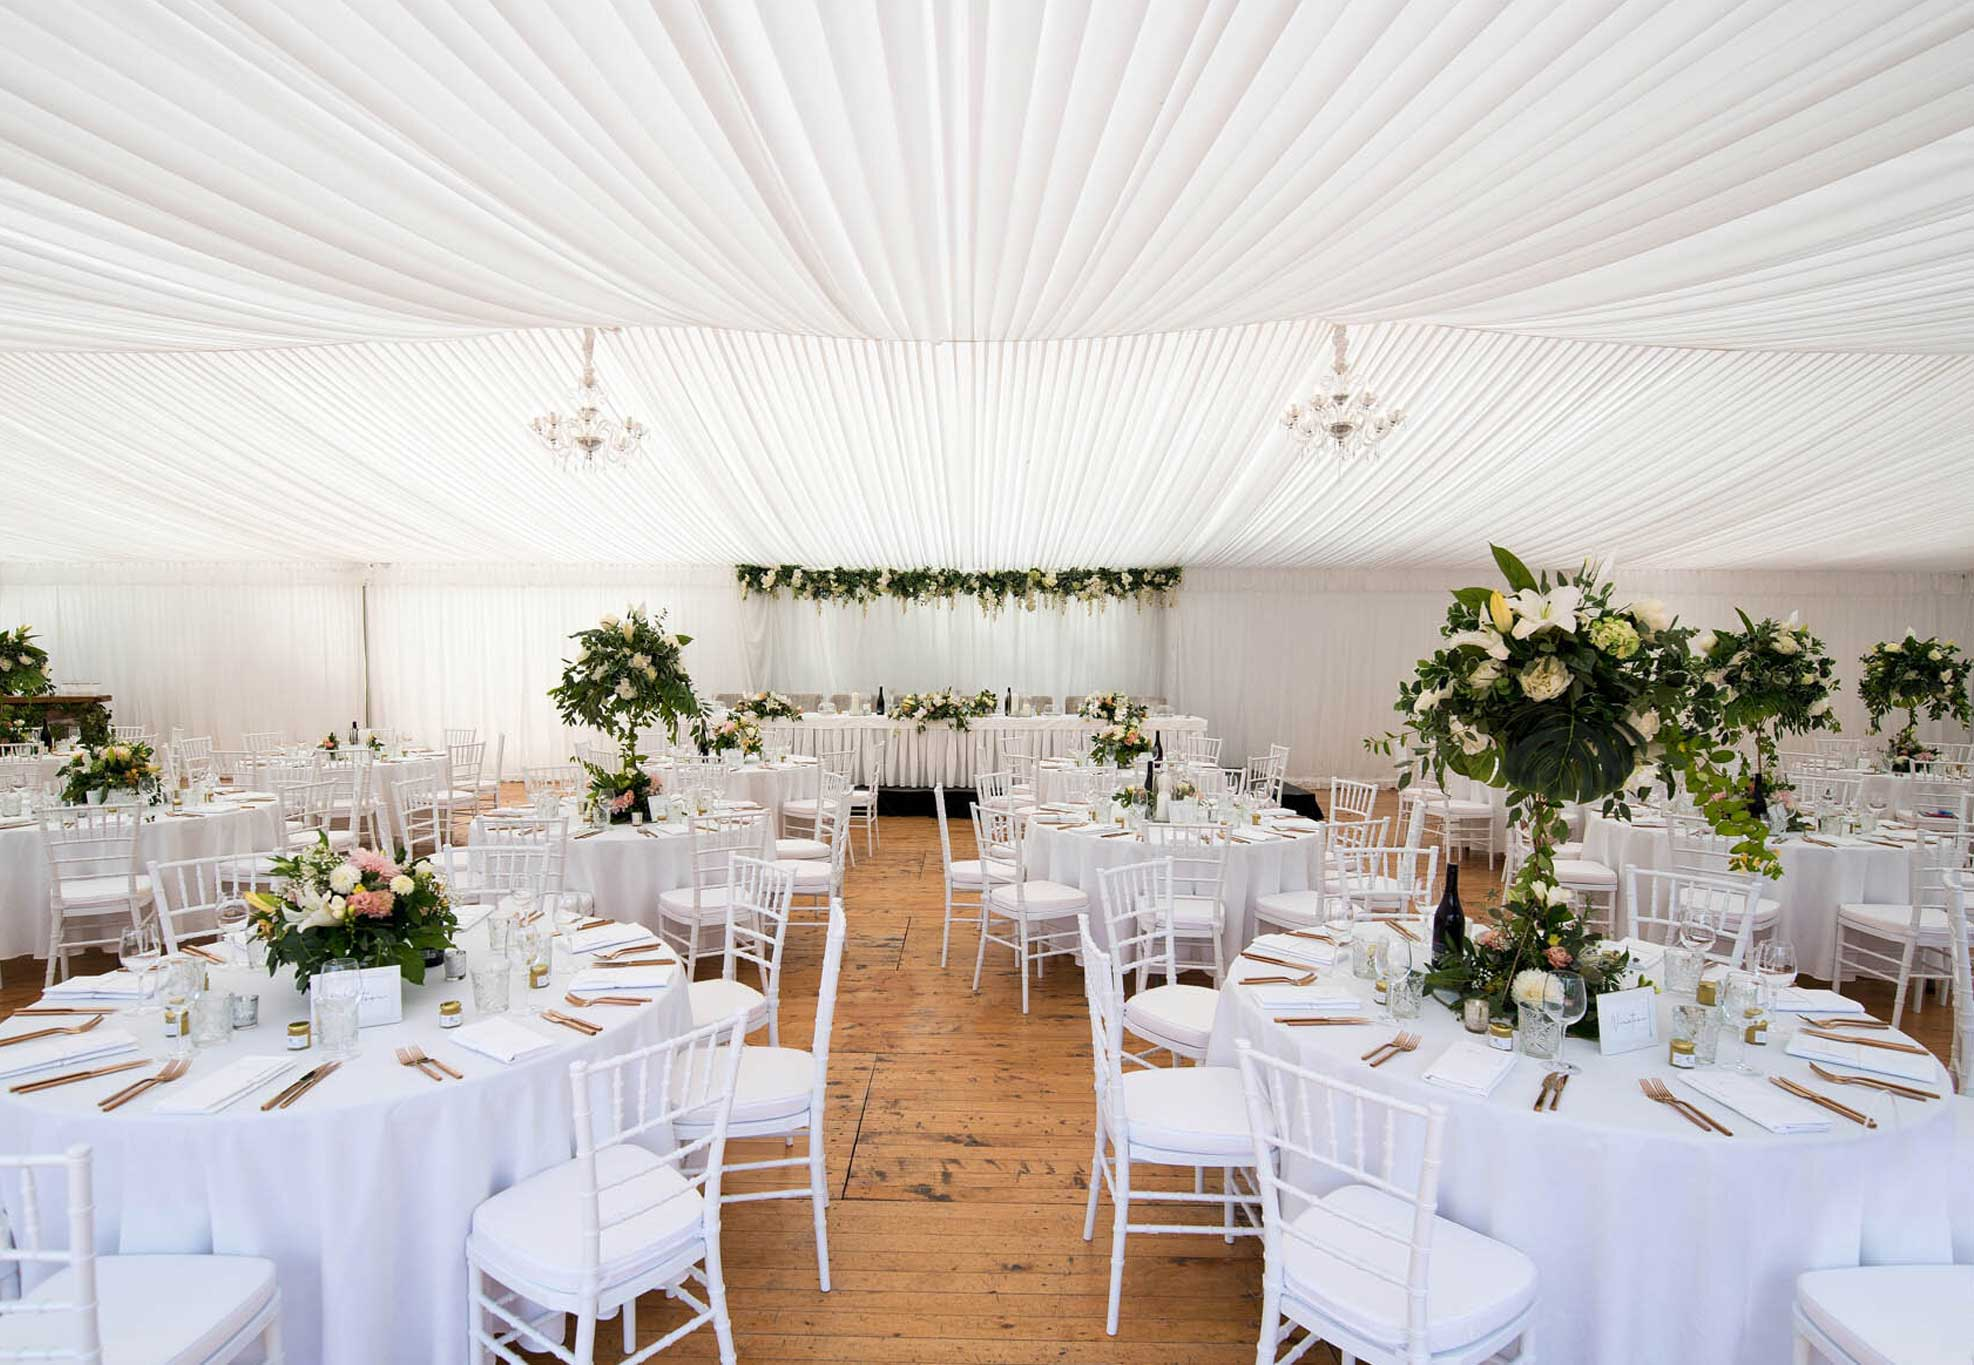 silk-estate-marquee-weddings-and-events-styling-and-hire-furniture-chairs-chivari